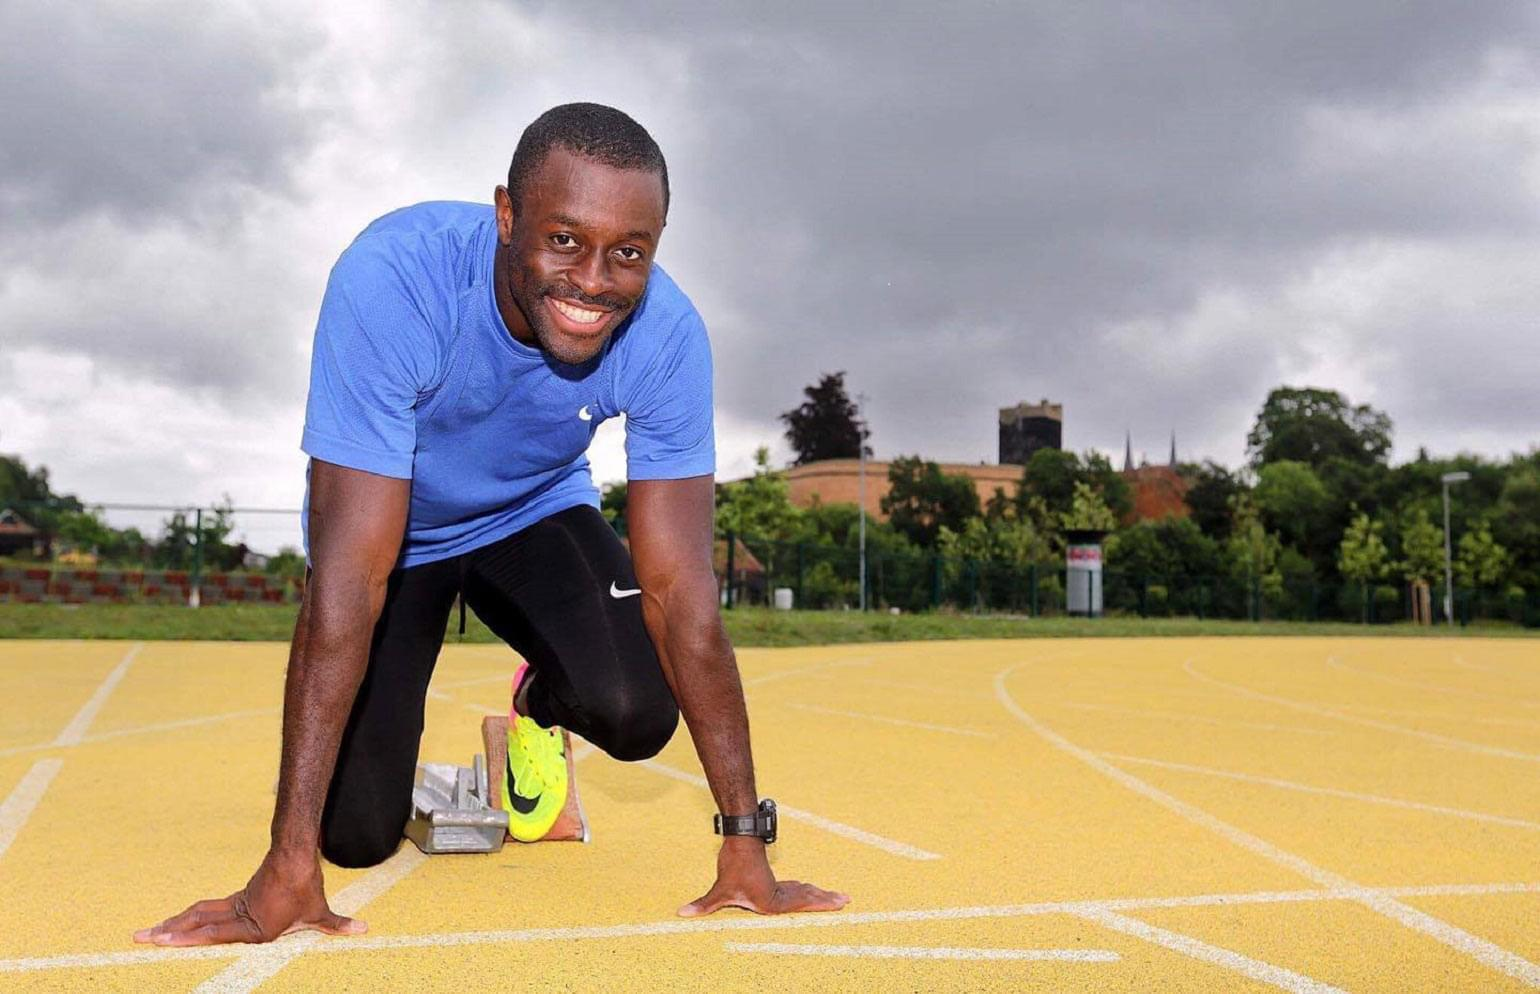 Sam Effah, RBC Olympian on starting line ready to sprint